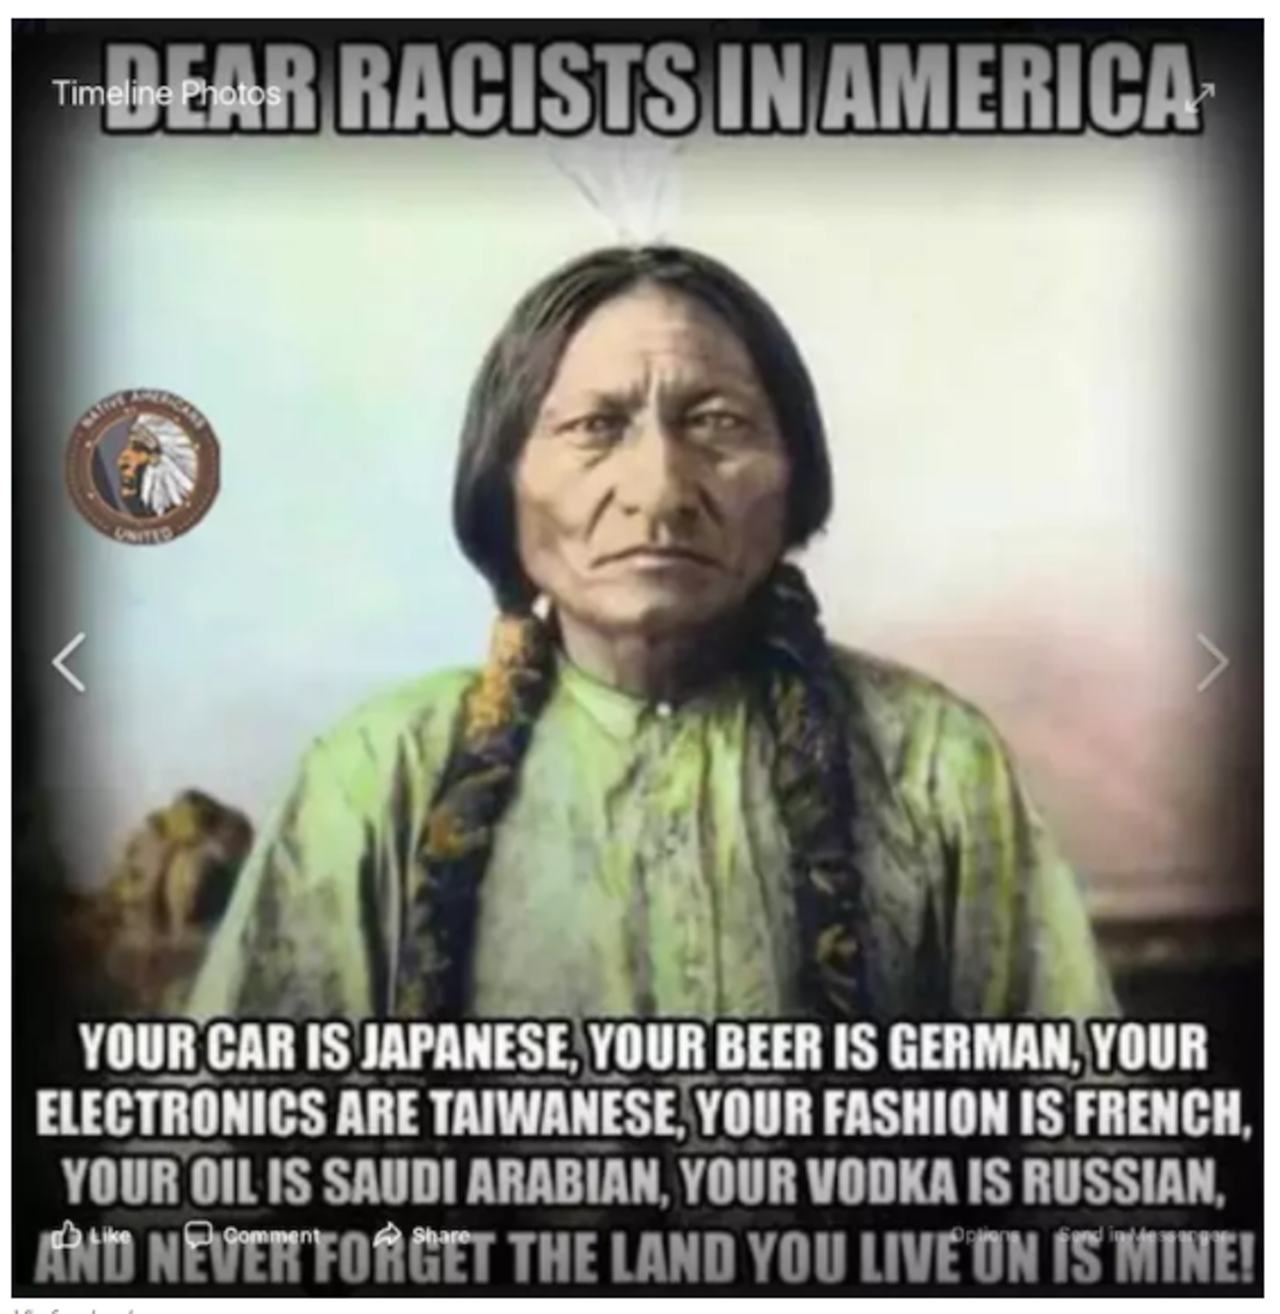 One of the memes created by @Native_Americans_United_ and shared on Facebook.